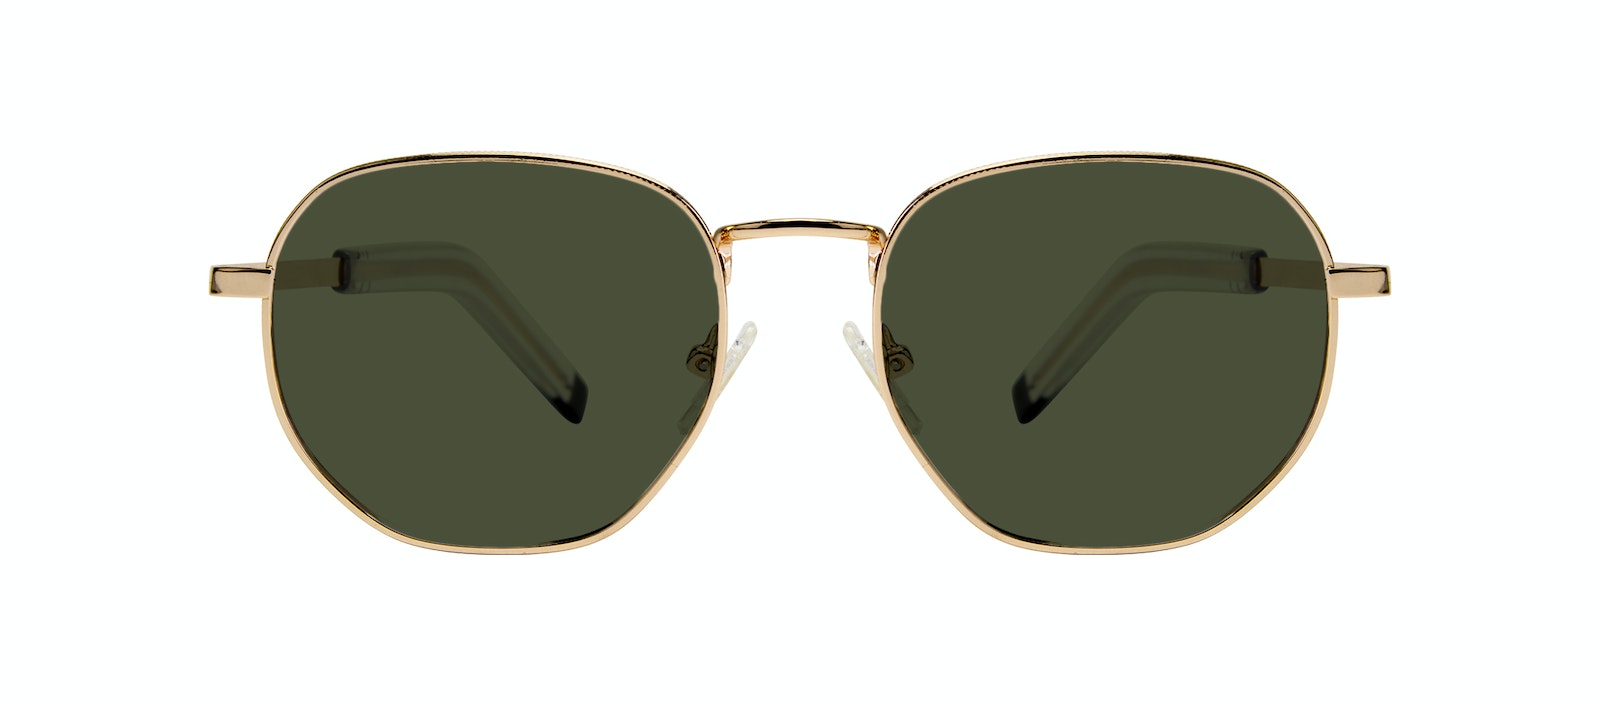 Affordable Fashion Glasses Round Sunglasses Men Rise S Gold Front